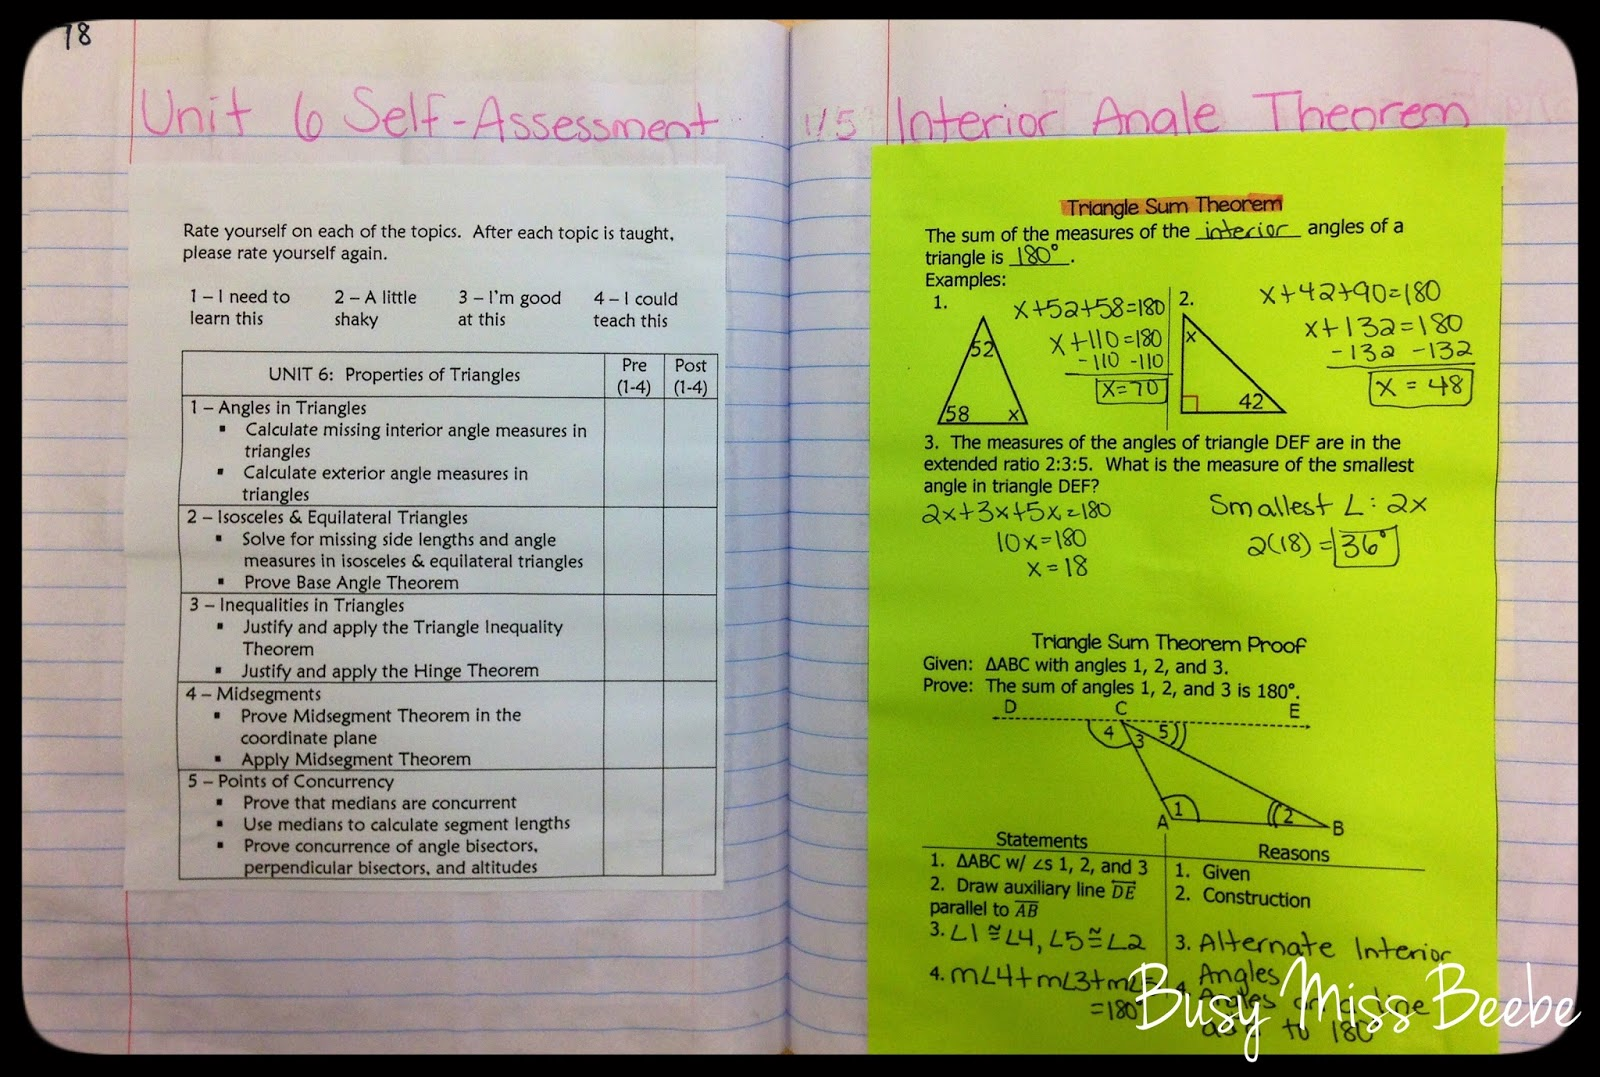 Busy miss beebe 2014 2015 geometry inb unit 6 triangle - Sum of the exterior angles of a triangle ...